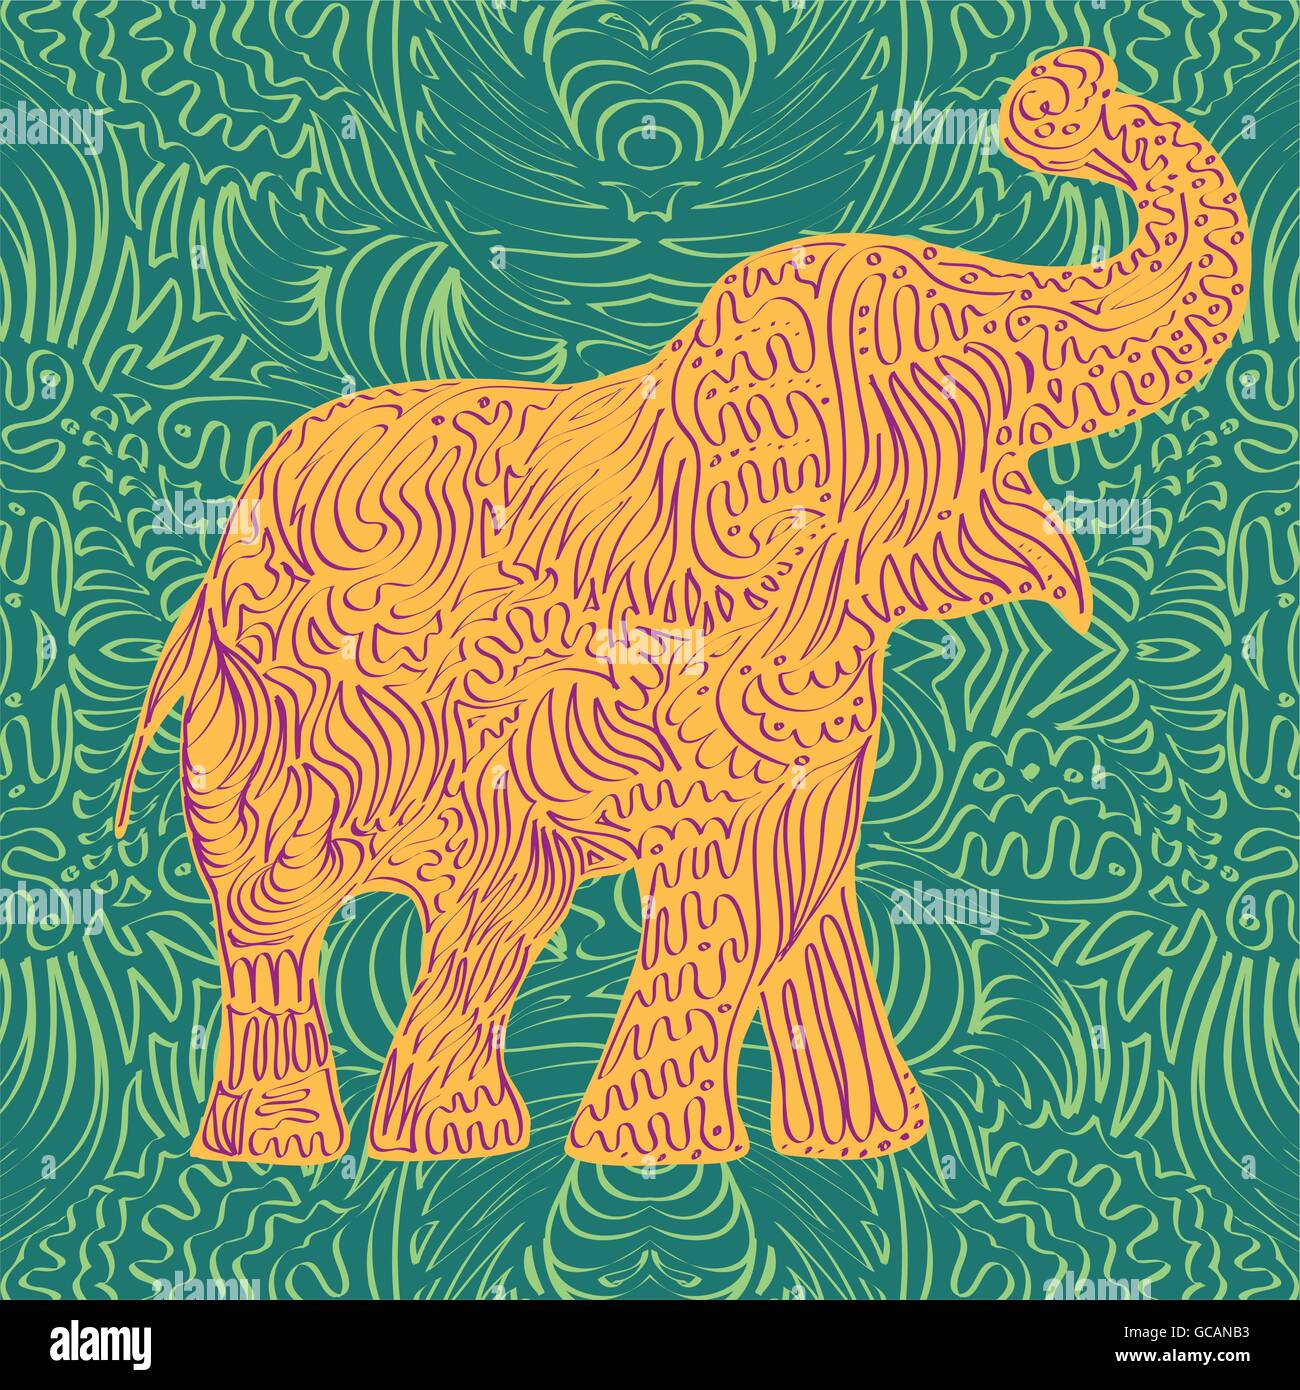 Stylised patterned elephant. Hand drawn vector illustration - Stock Vector